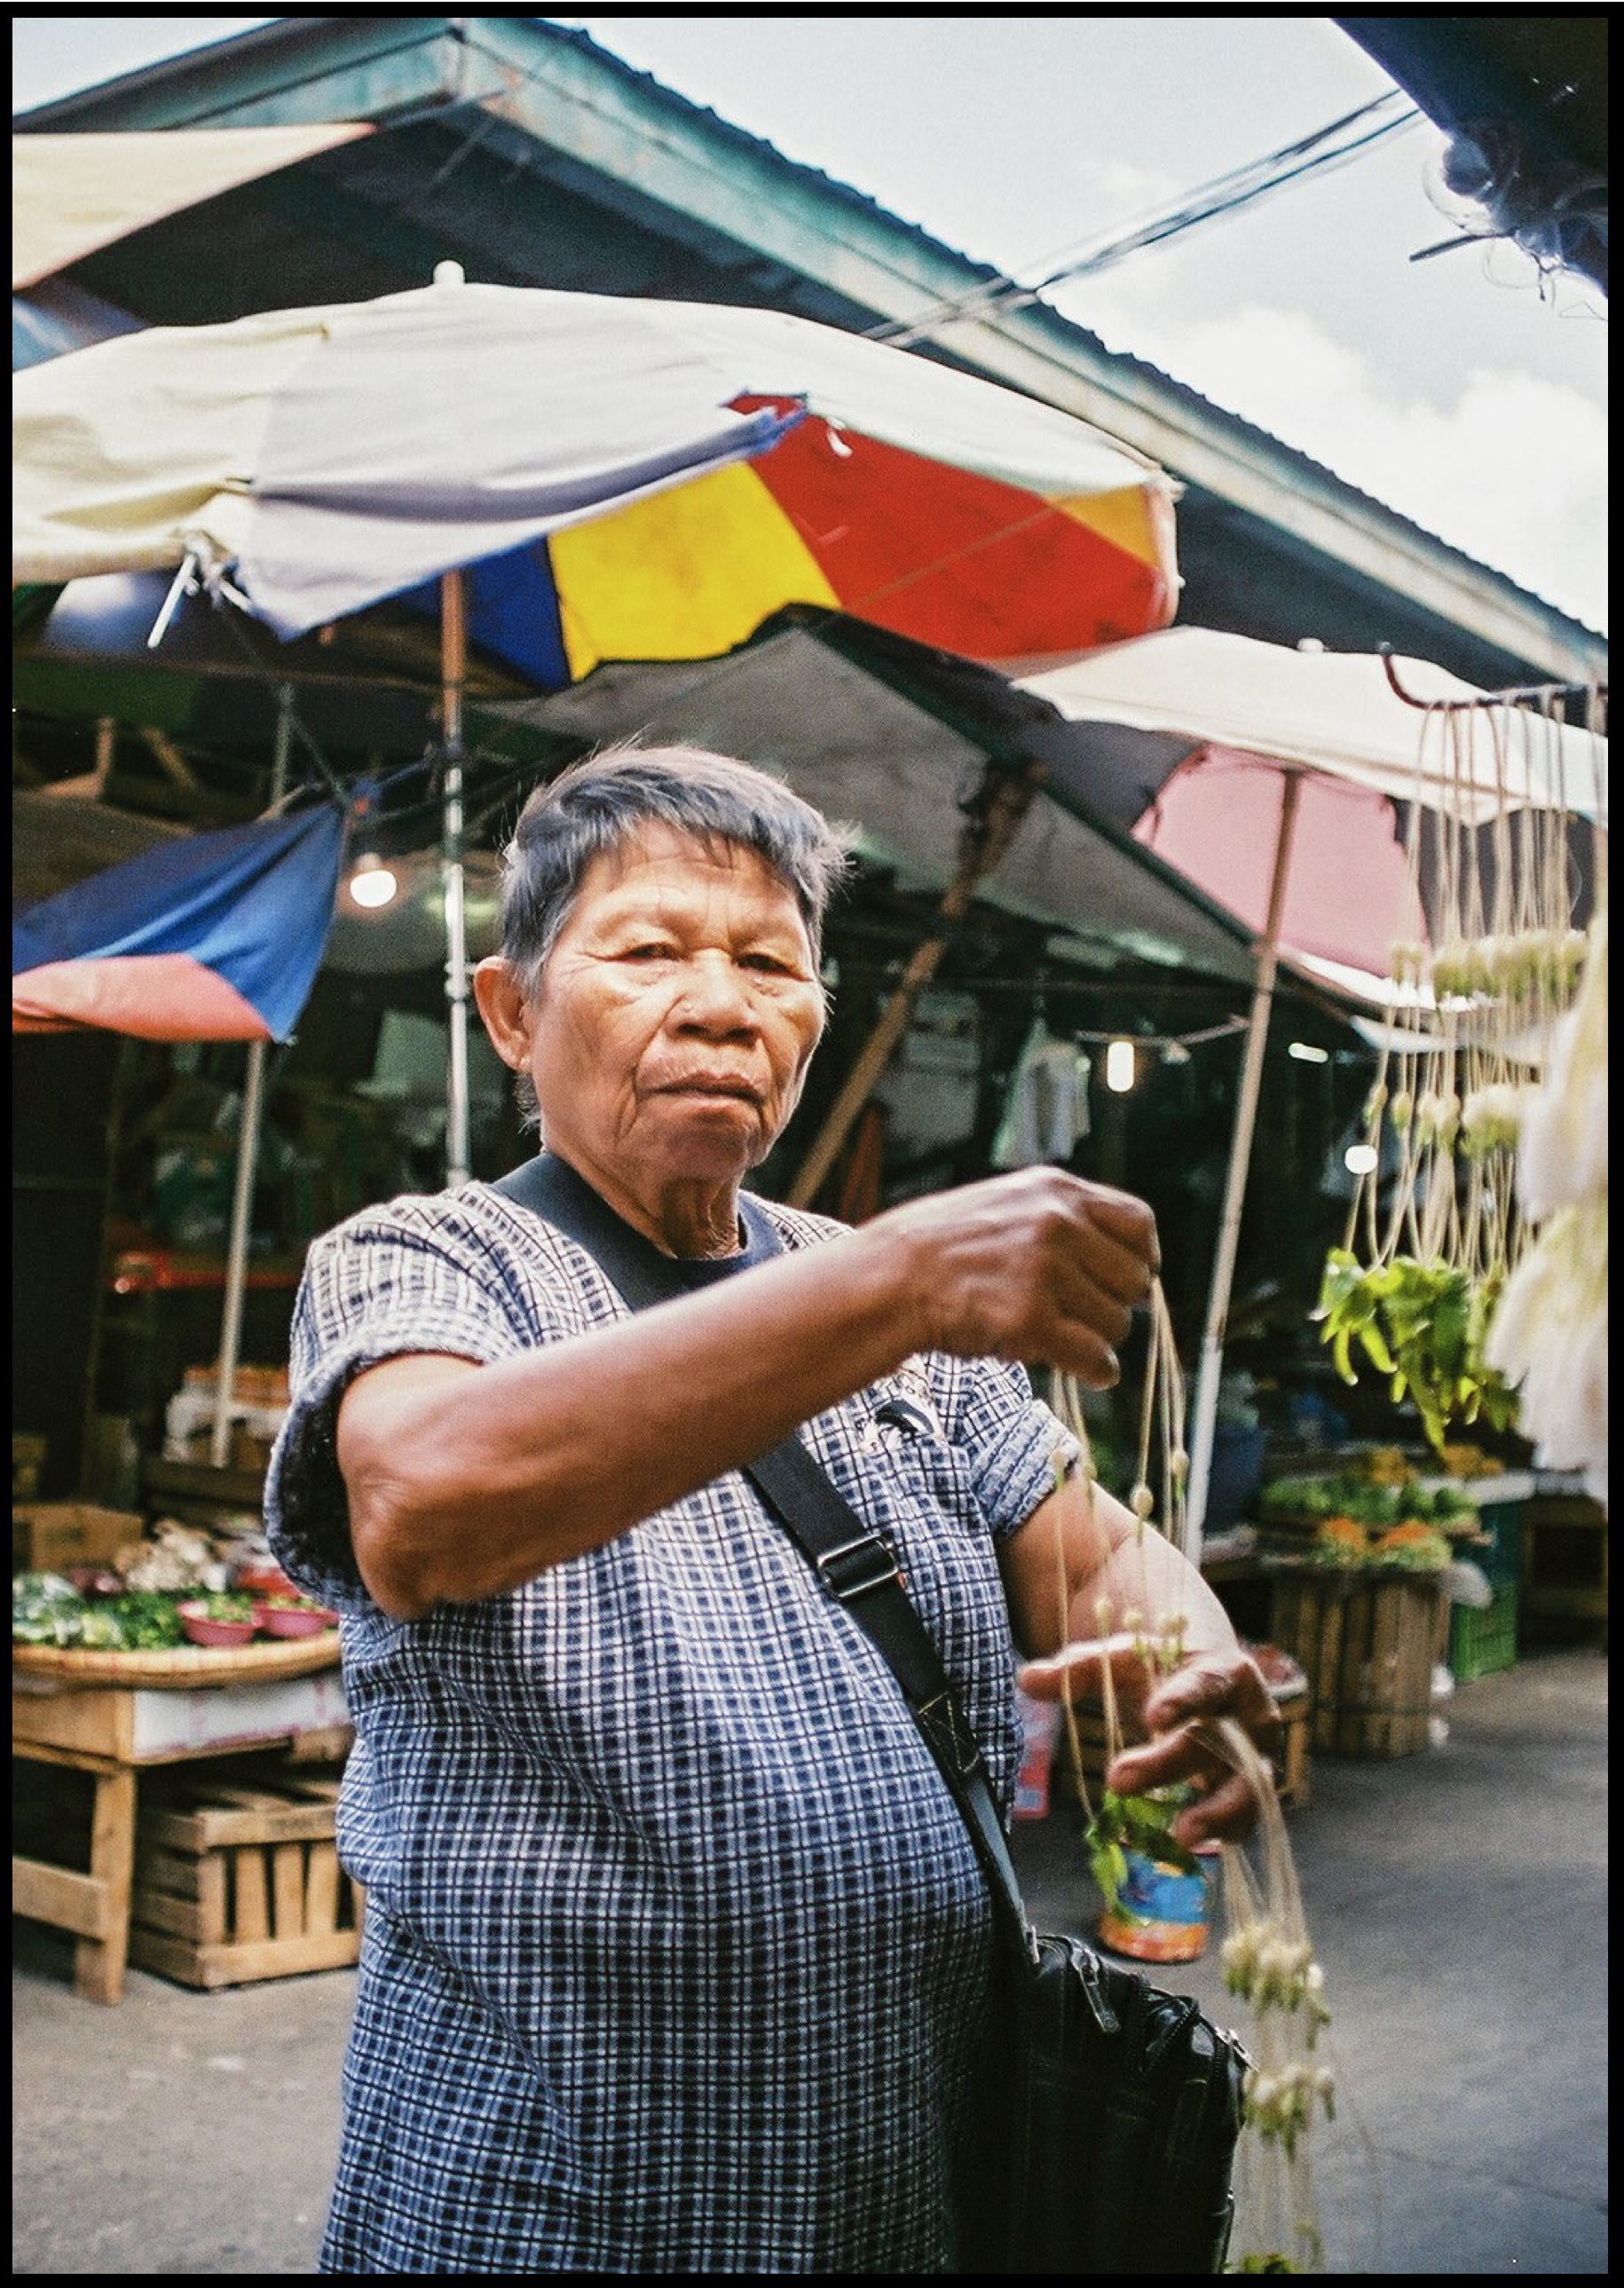 CoxCo_daily_life_Philippines_02 2019-08-12 0.46.11.png